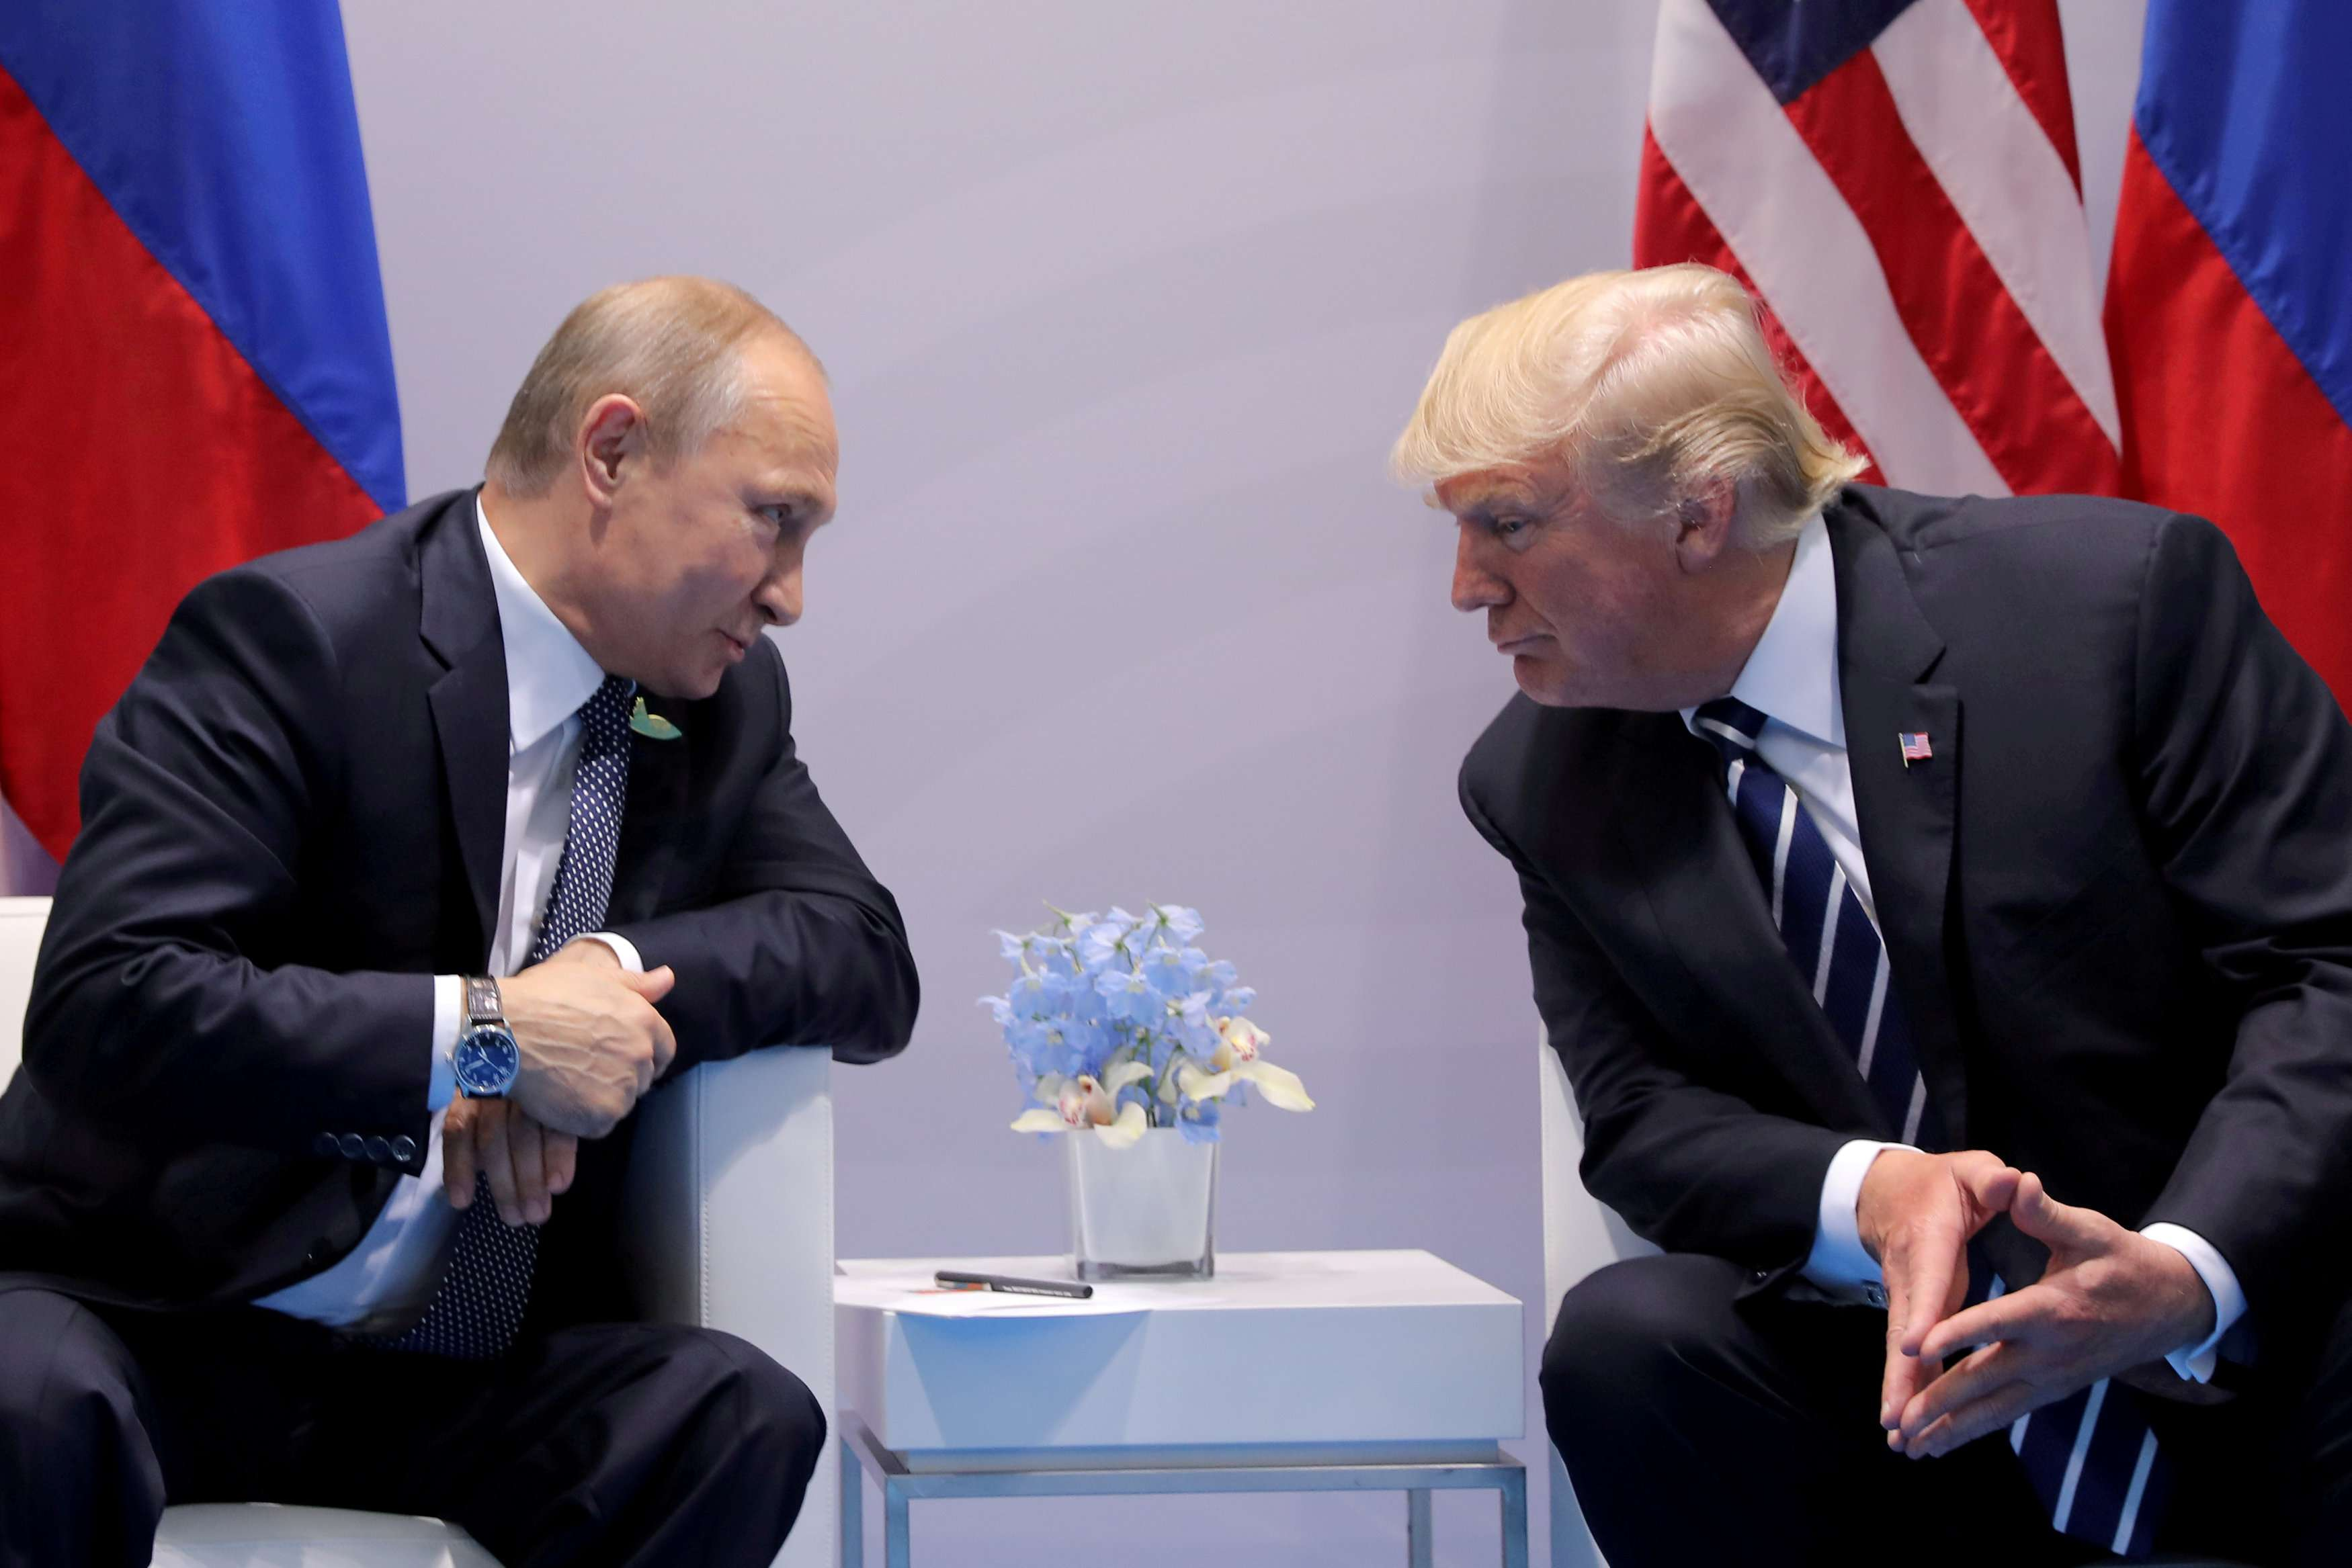 Russian President Vladimir Putin (L) talks to US President Donald Trump during their meeting at the G20 summit in Hamburg, last July. (Reuters)